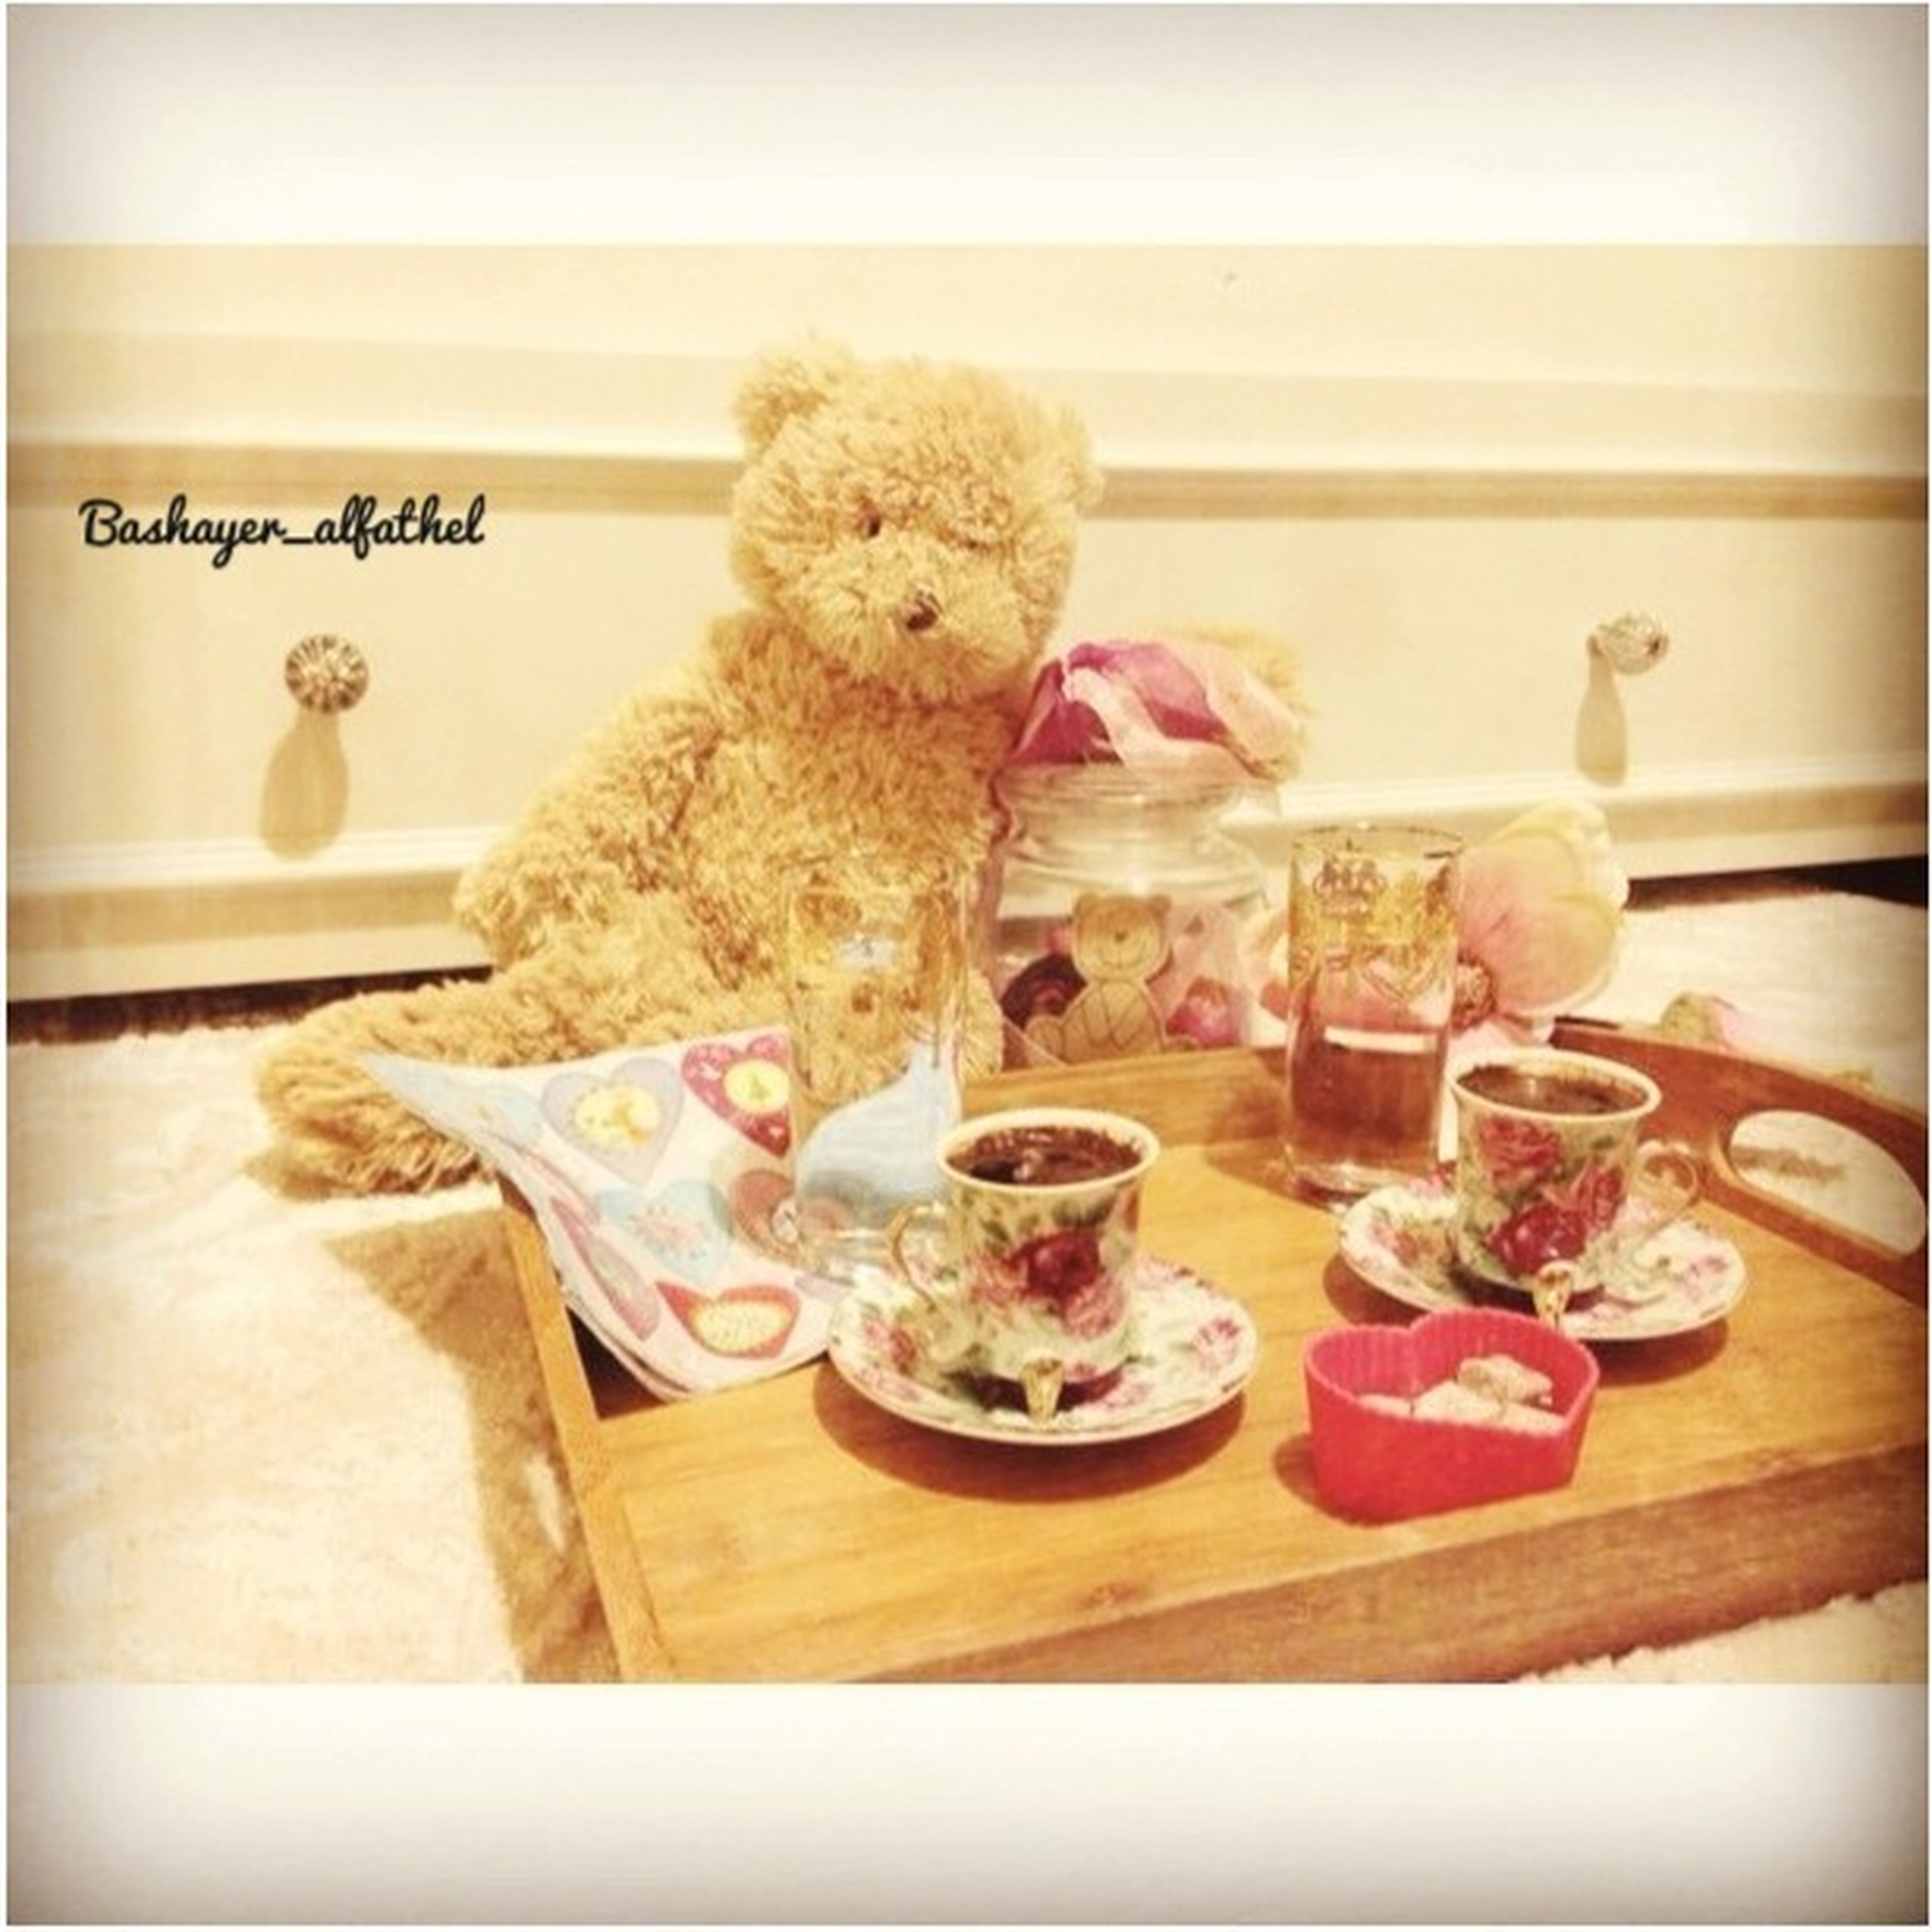 indoors, table, still life, food, food and drink, home interior, auto post production filter, transfer print, stuffed toy, animal representation, toy, plate, freshness, ready-to-eat, no people, teddy bear, home, close-up, variation, sweet food